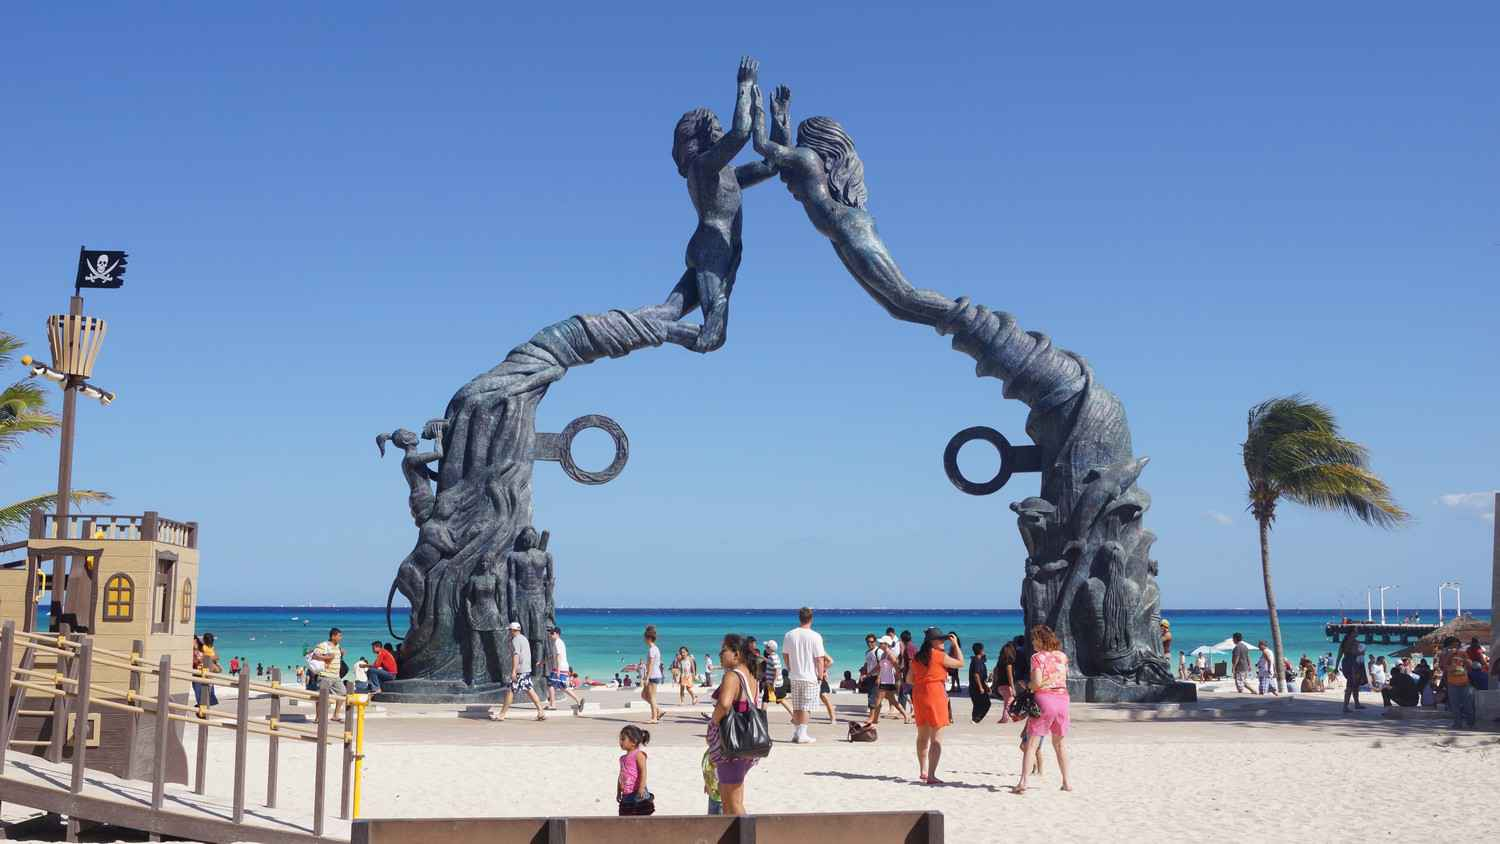 Another side view of the statue on the beach in Playa Del Carmen.